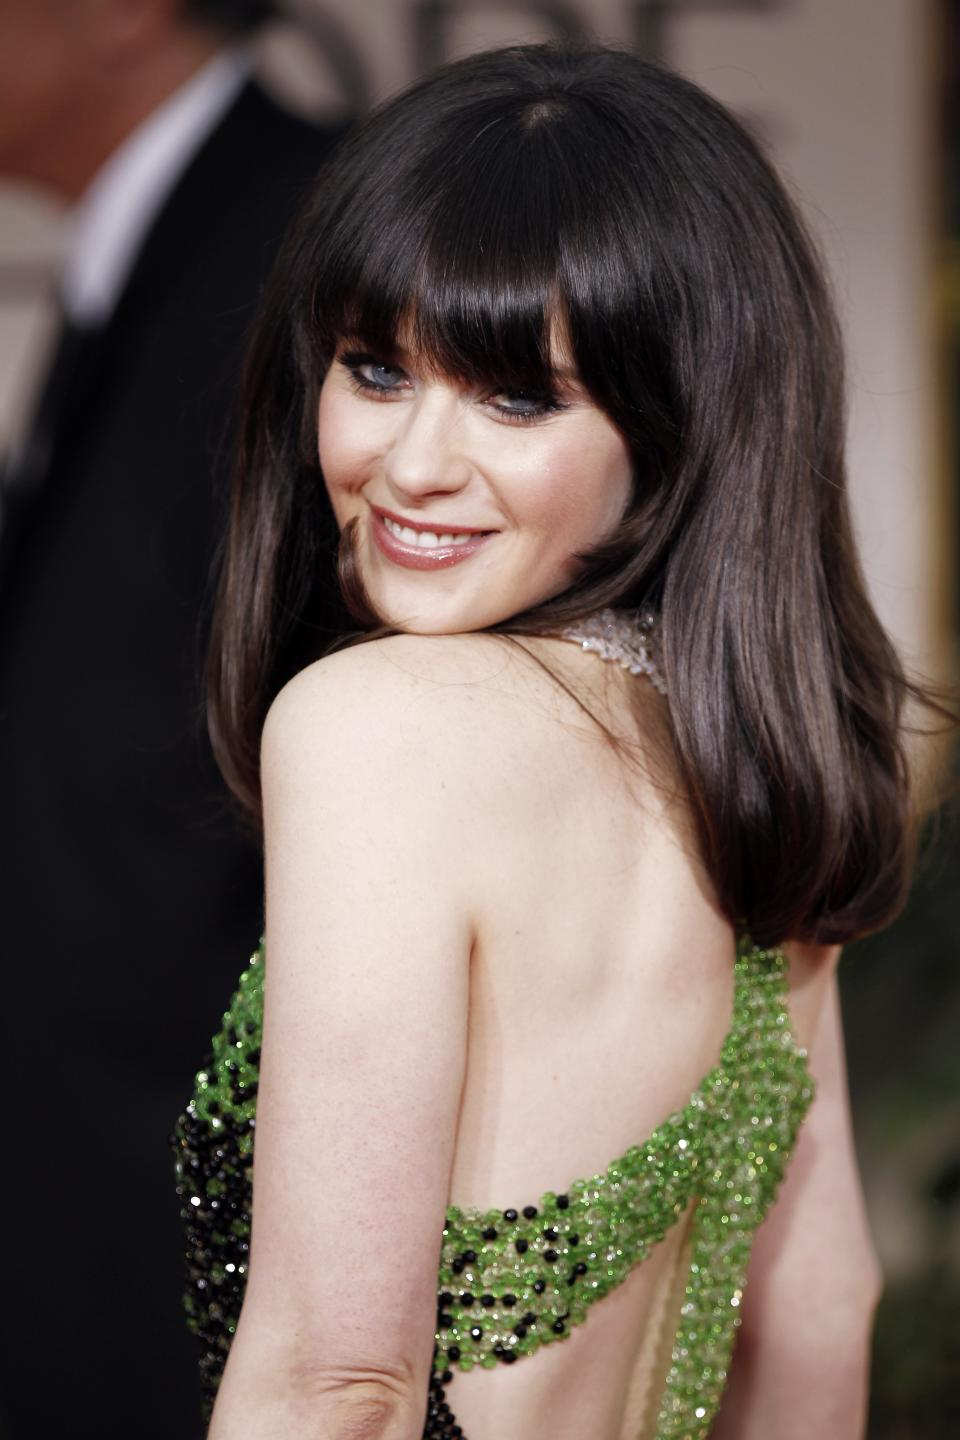 Zooey Deschanel arrives at the 69th Annual Golden Globe Awards Sunday, Jan. 15, 2012, in Beverly Hills, Calif. (AP Photo/Matt Sayles)